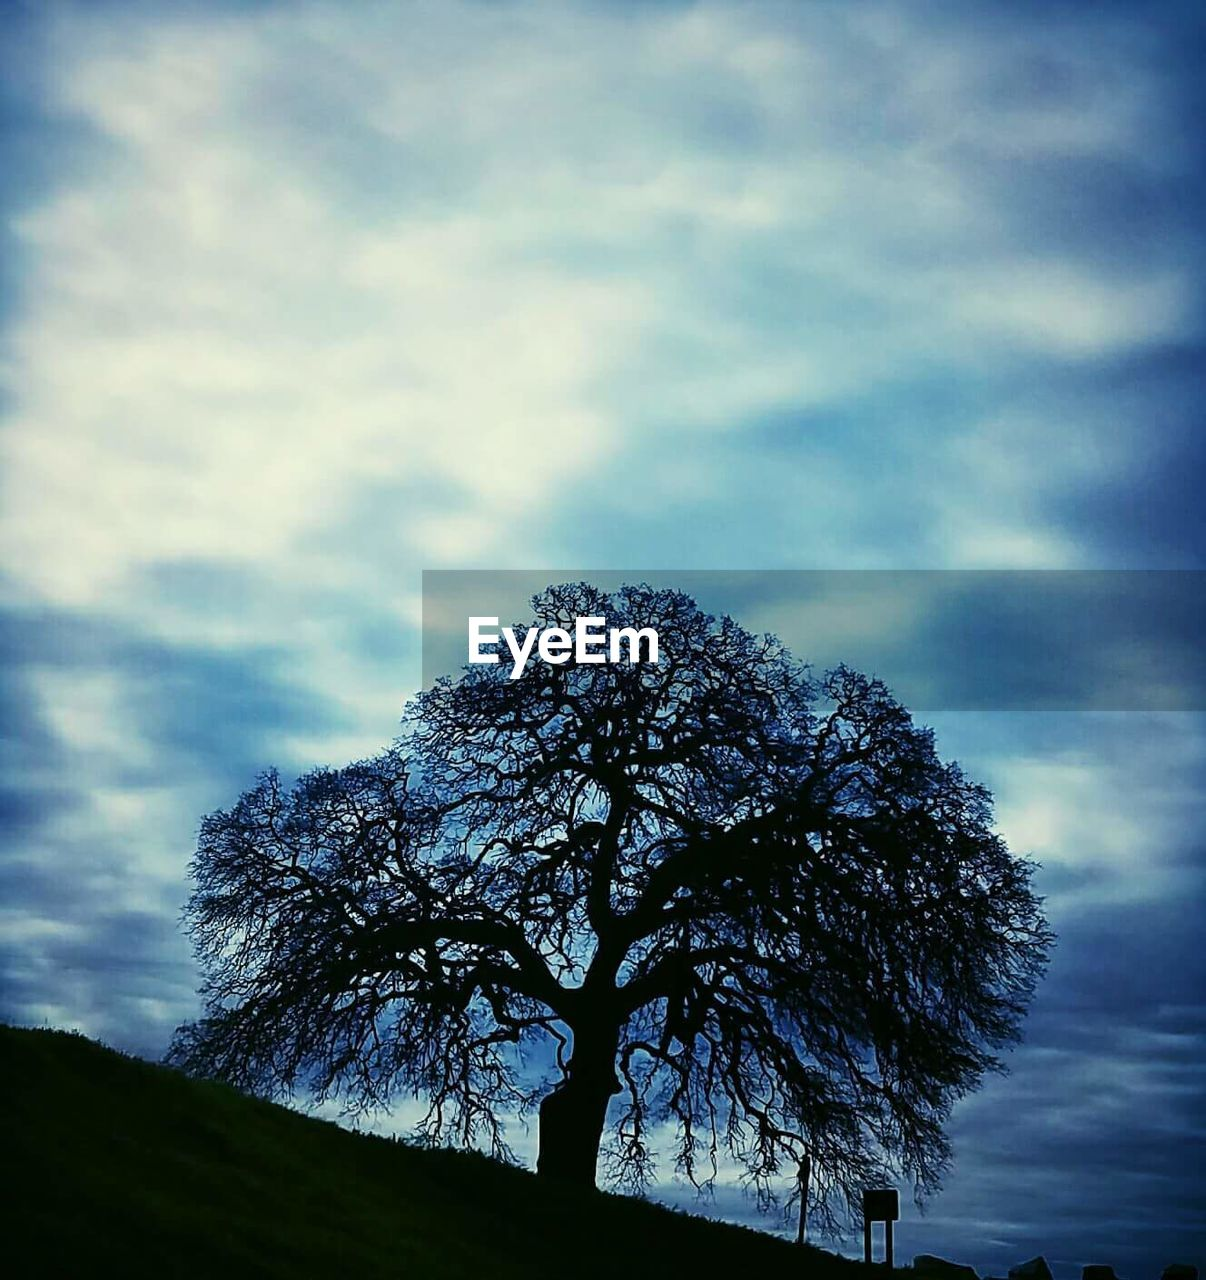 tree, nature, tranquility, sky, low angle view, day, beauty in nature, outdoors, tranquil scene, cloud - sky, silhouette, no people, scenics, landscape, branch, lone, bare tree